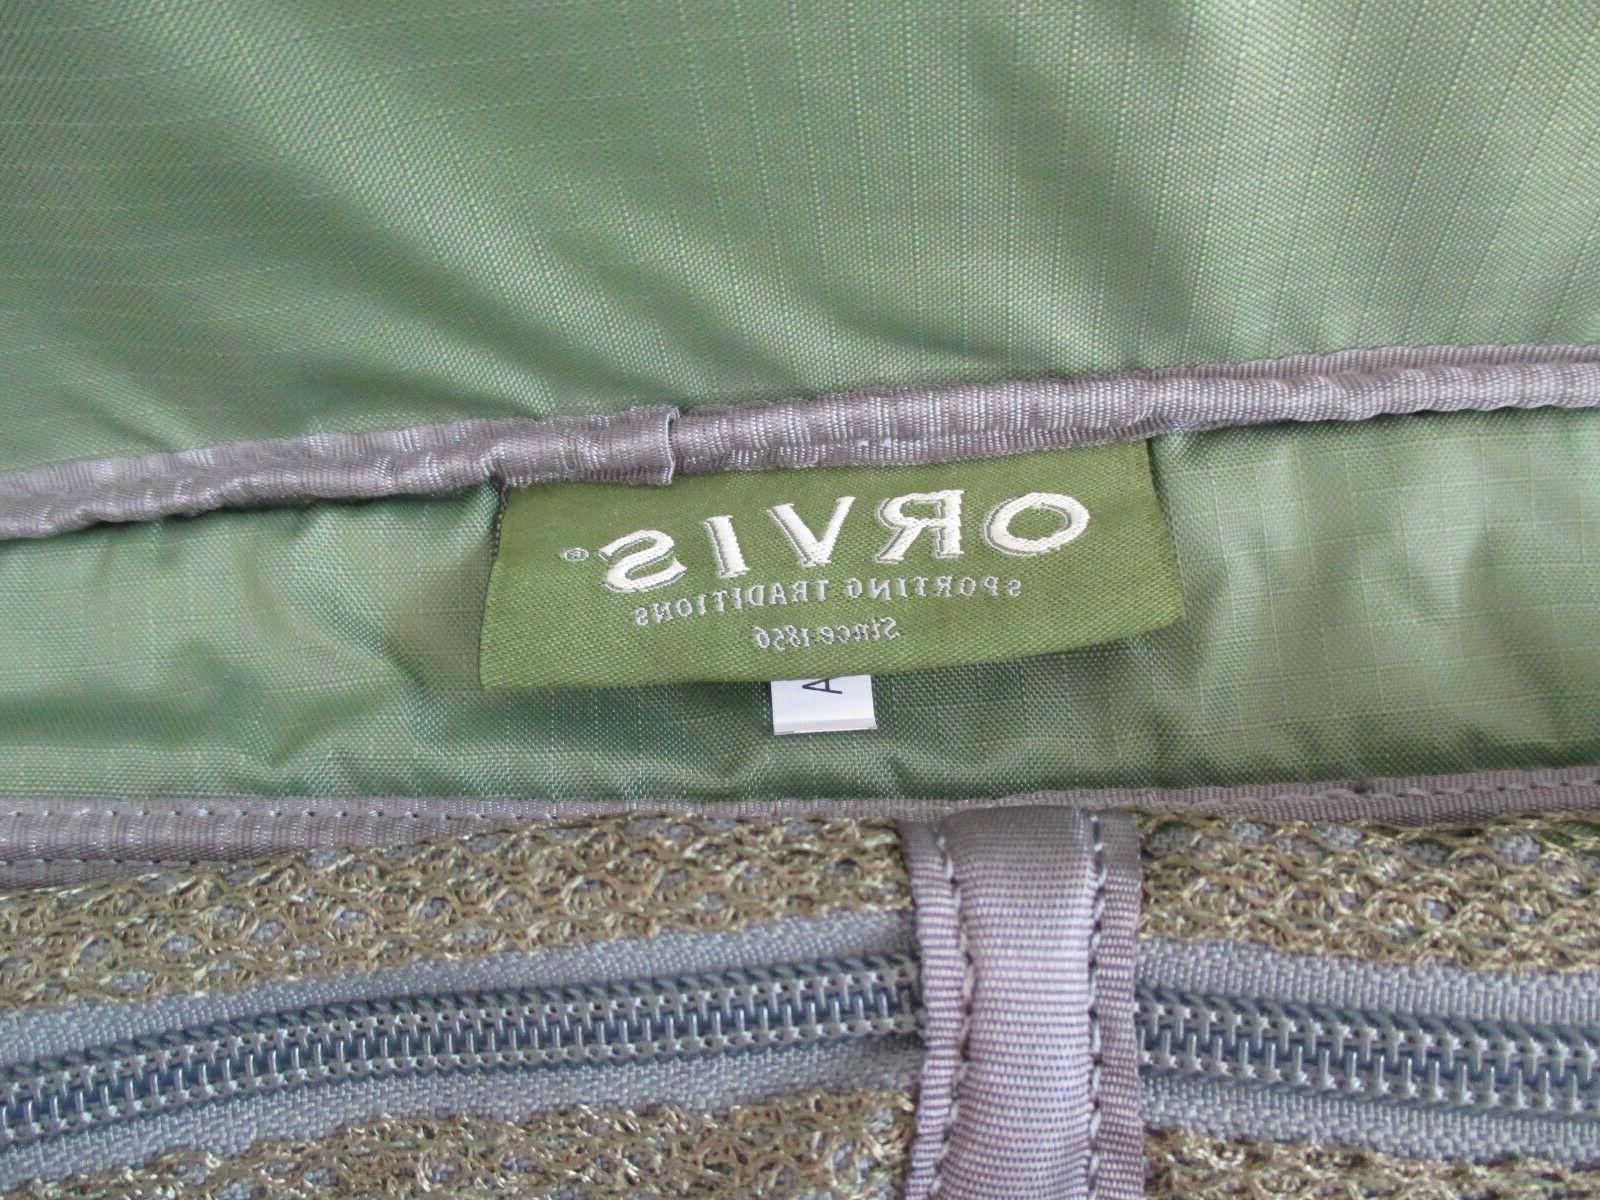 Orvis Tackle with Shoulder Nylon NEW USED